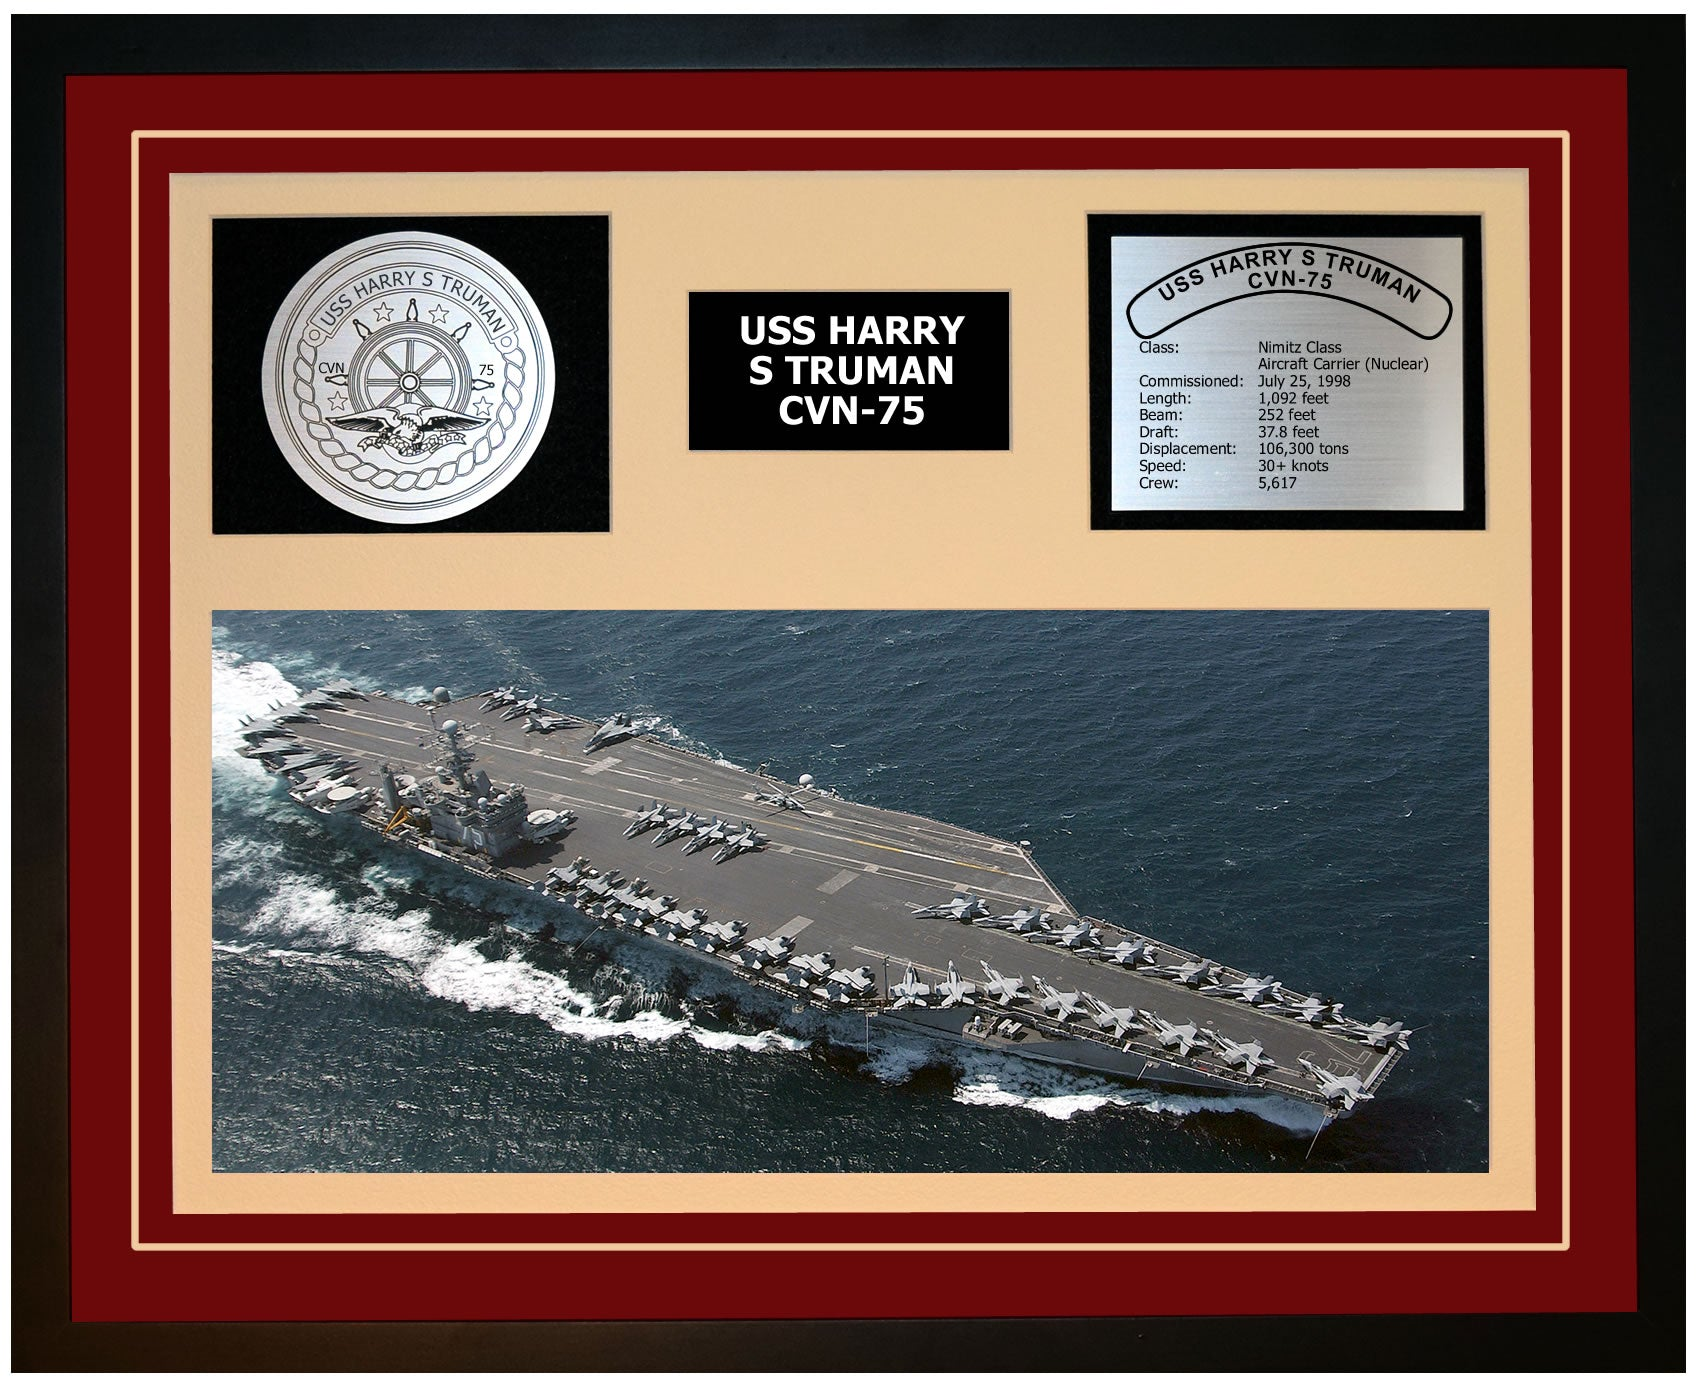 USS HARRY S TRUMAN CVN-75 Framed Navy Ship Display Burgundy